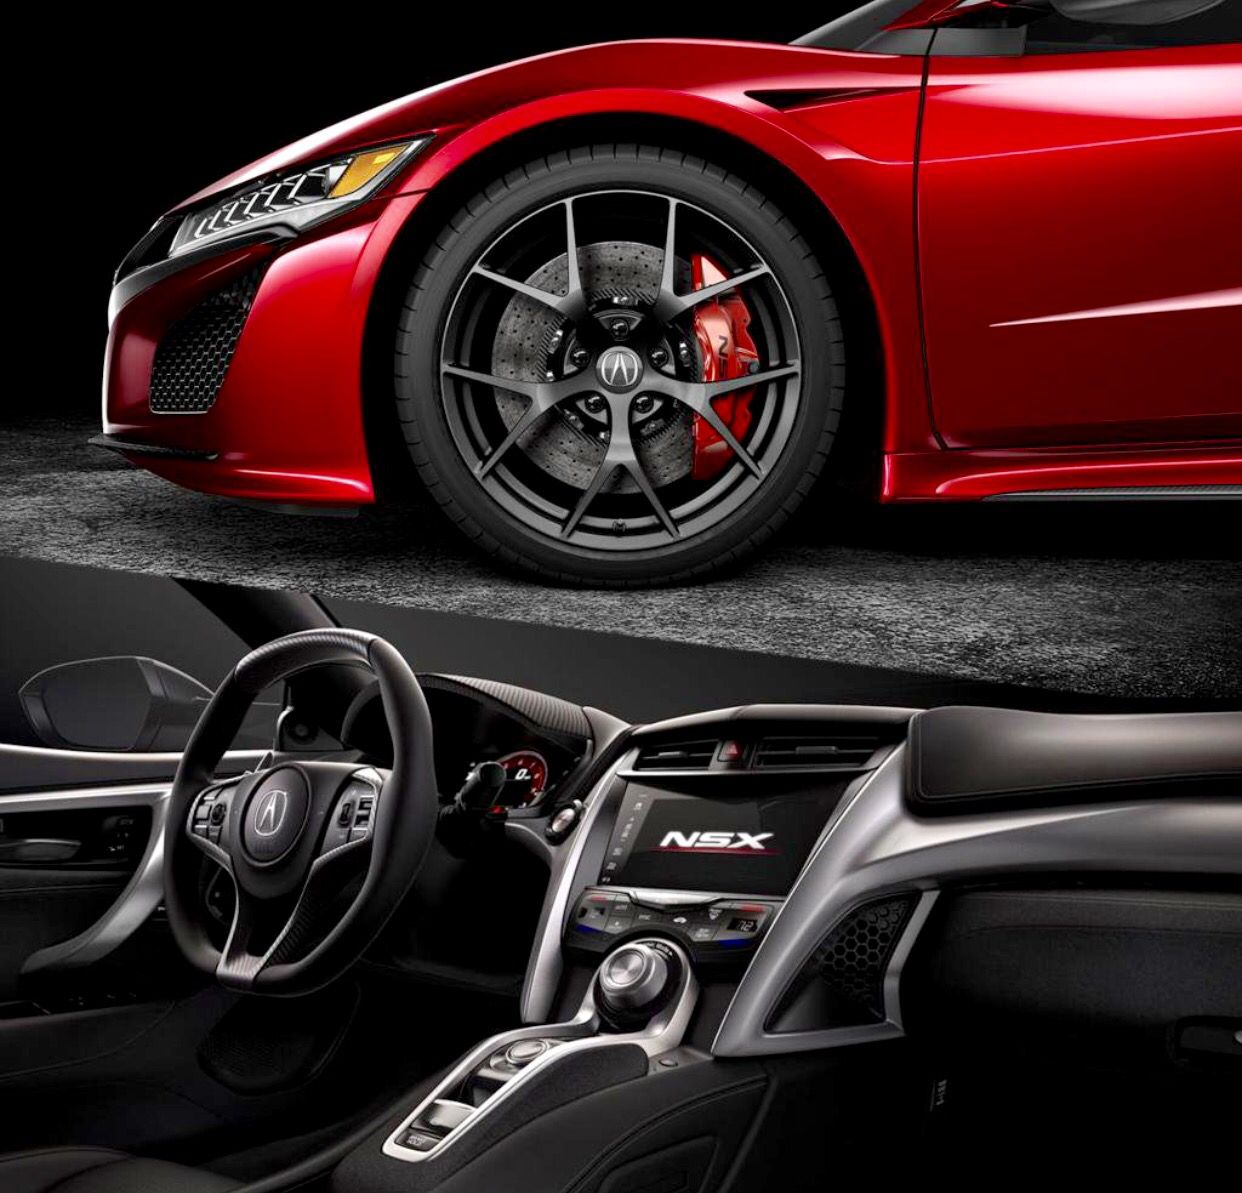 Build your #NSX & Tweet w/ #DriveAcuraNSXContest to enter. NoPurNec: nsx.acura.com/rules nsx.acura.com